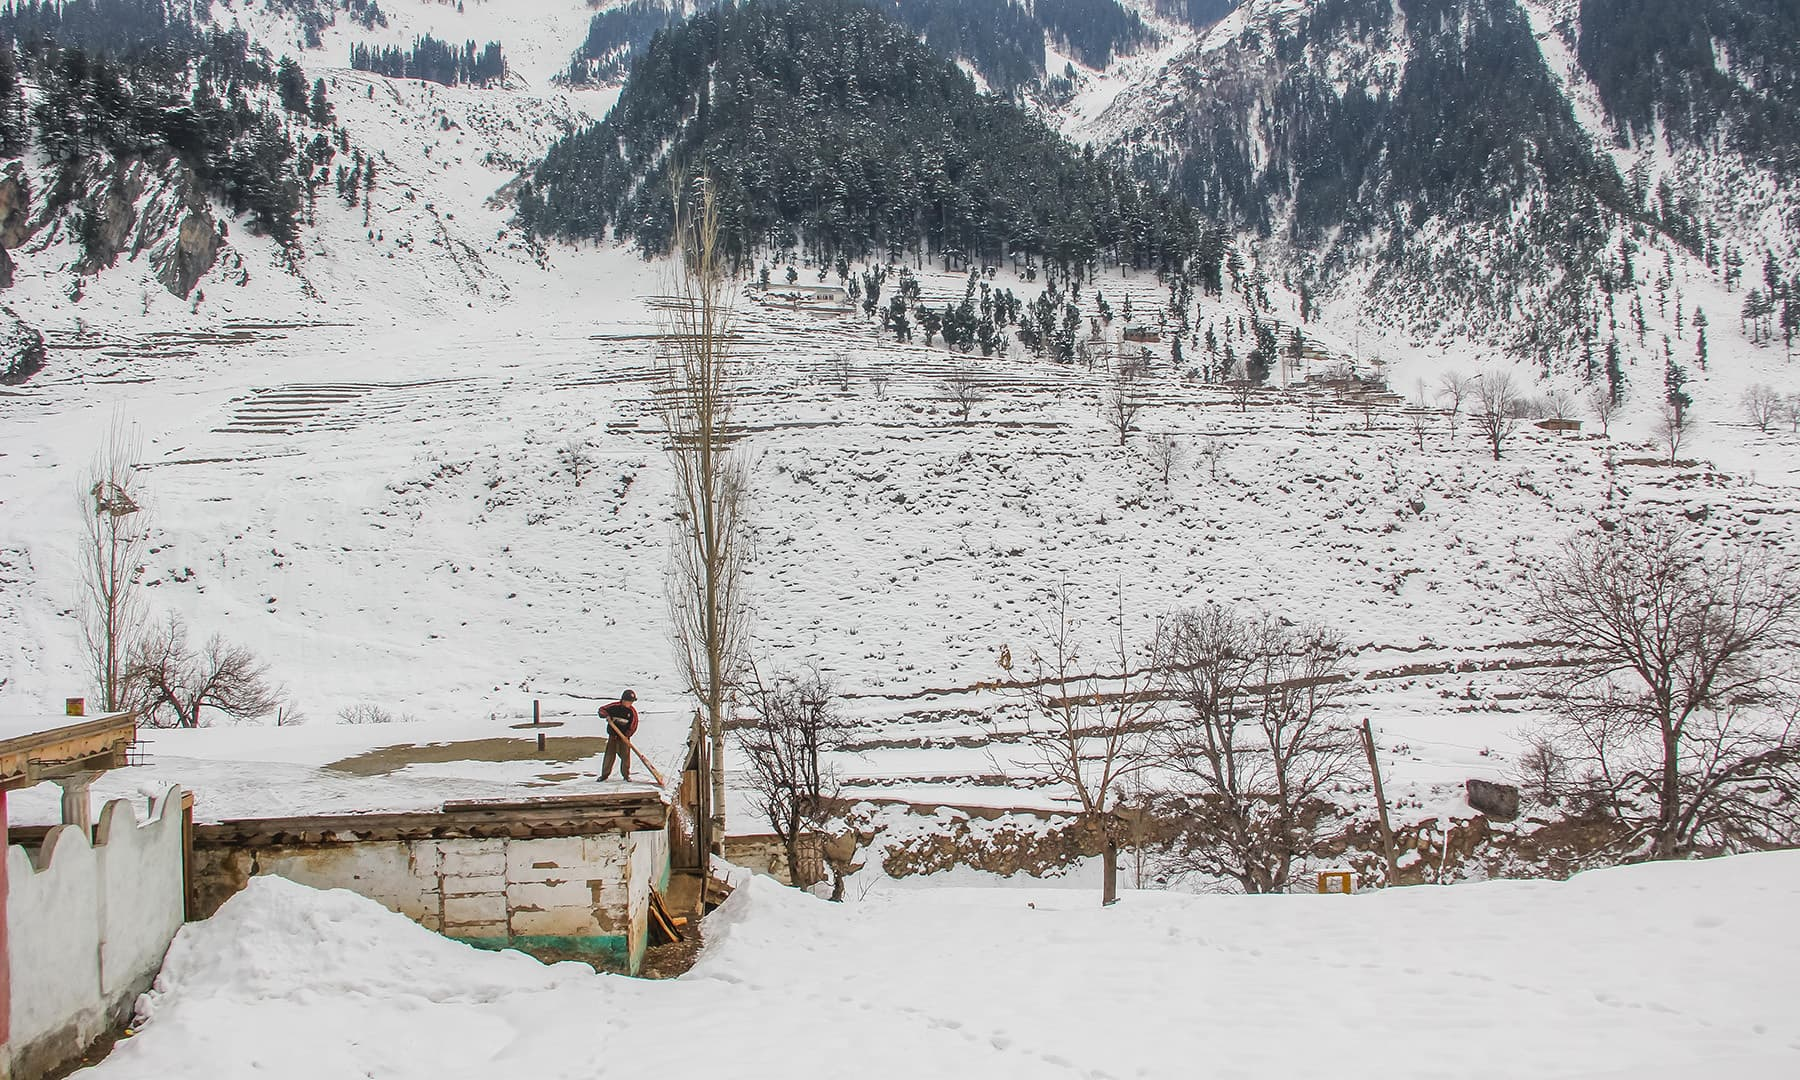 **A boy removes snow from the roof of his house in Kalam valley. — Photo by author**